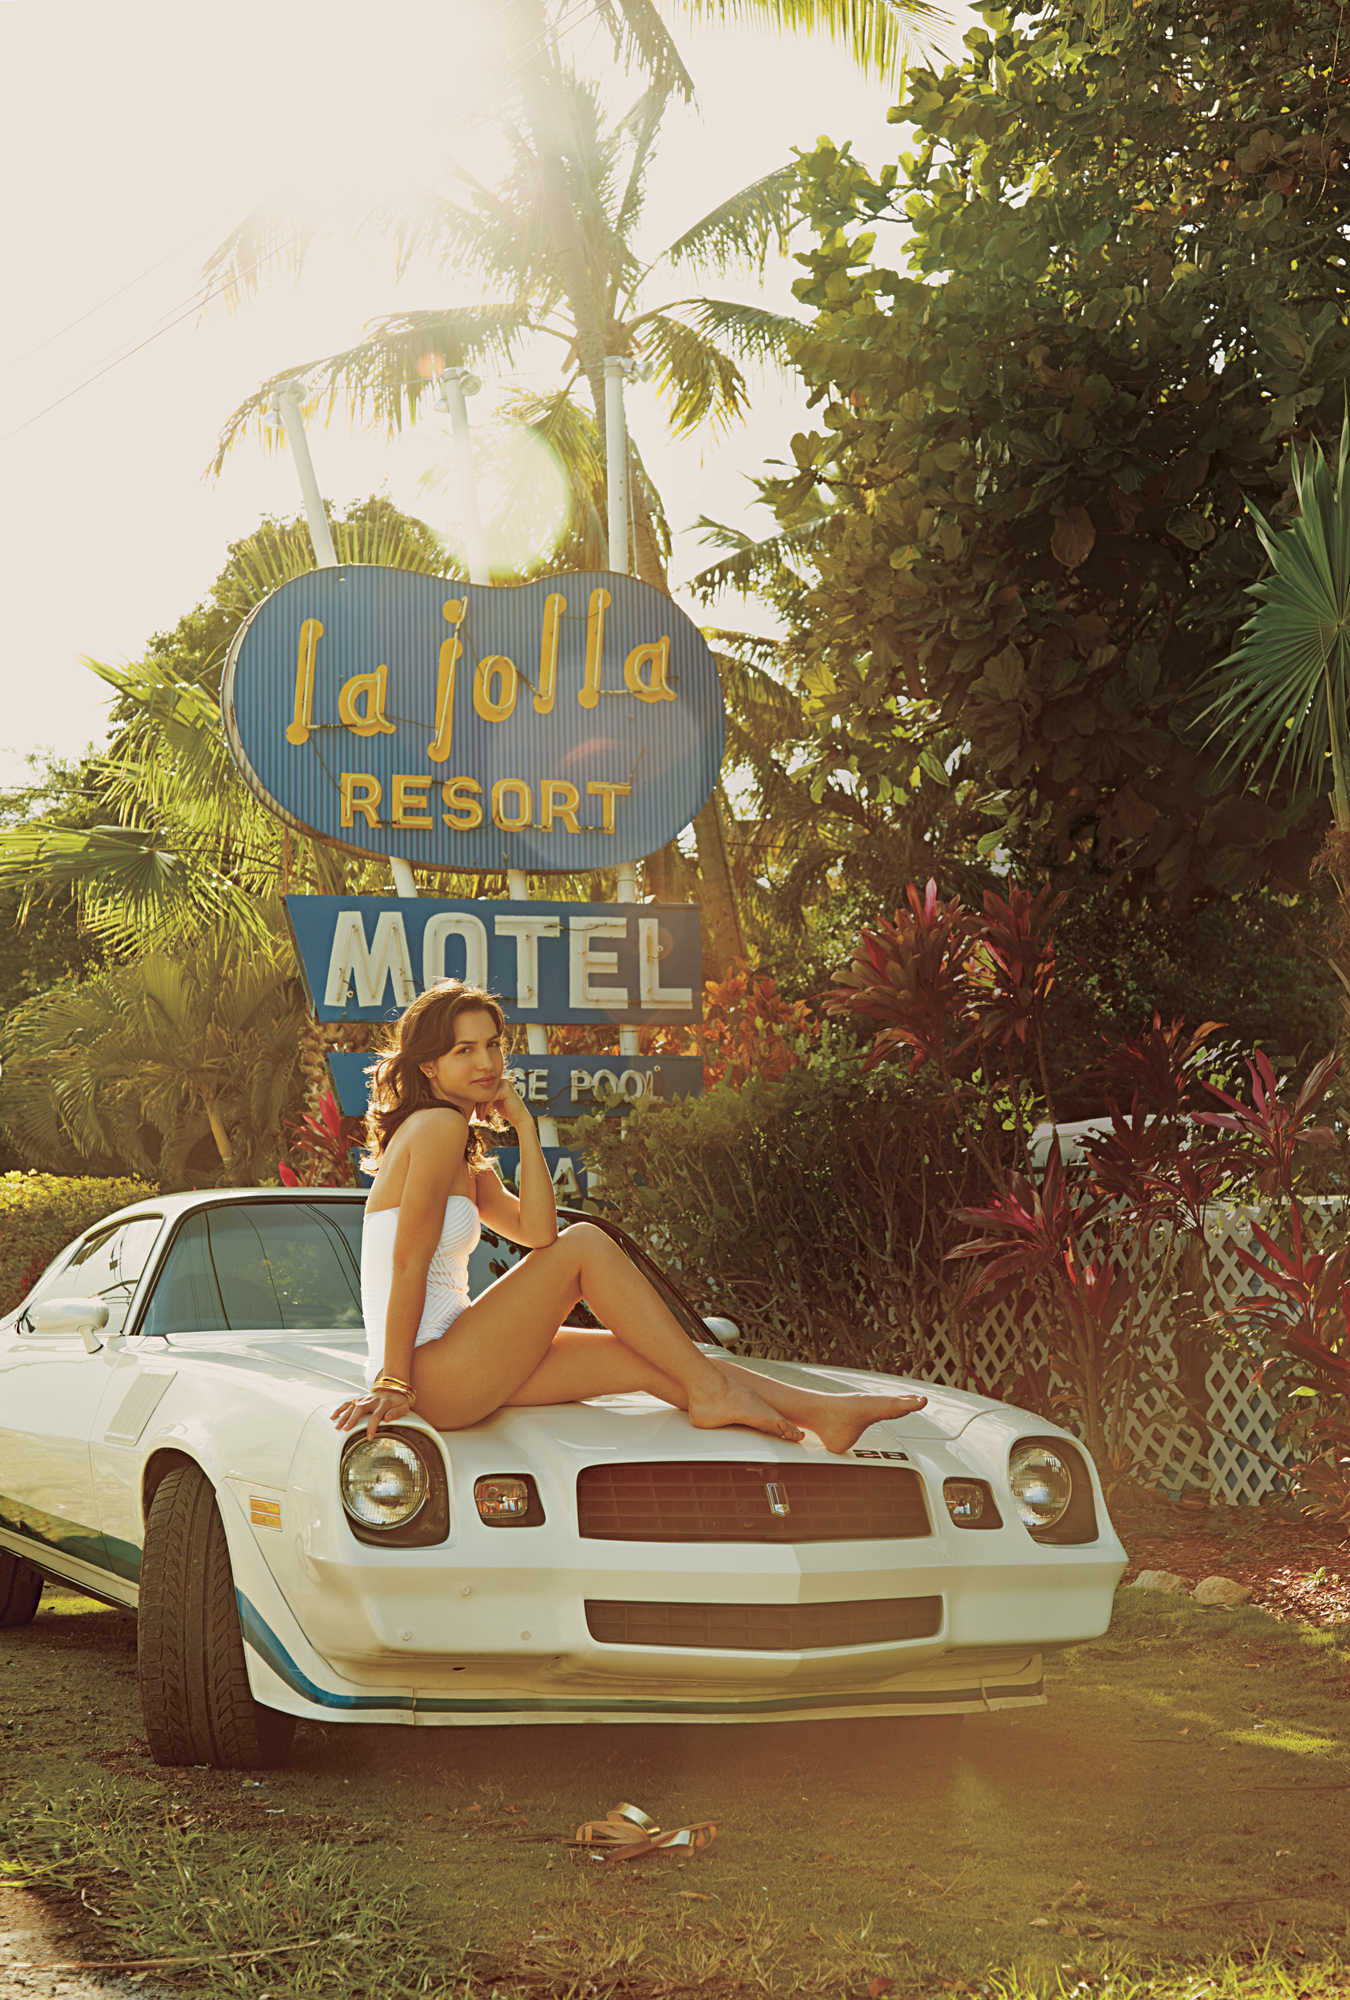 Model in swimsuit on Z28 in front of motel sign